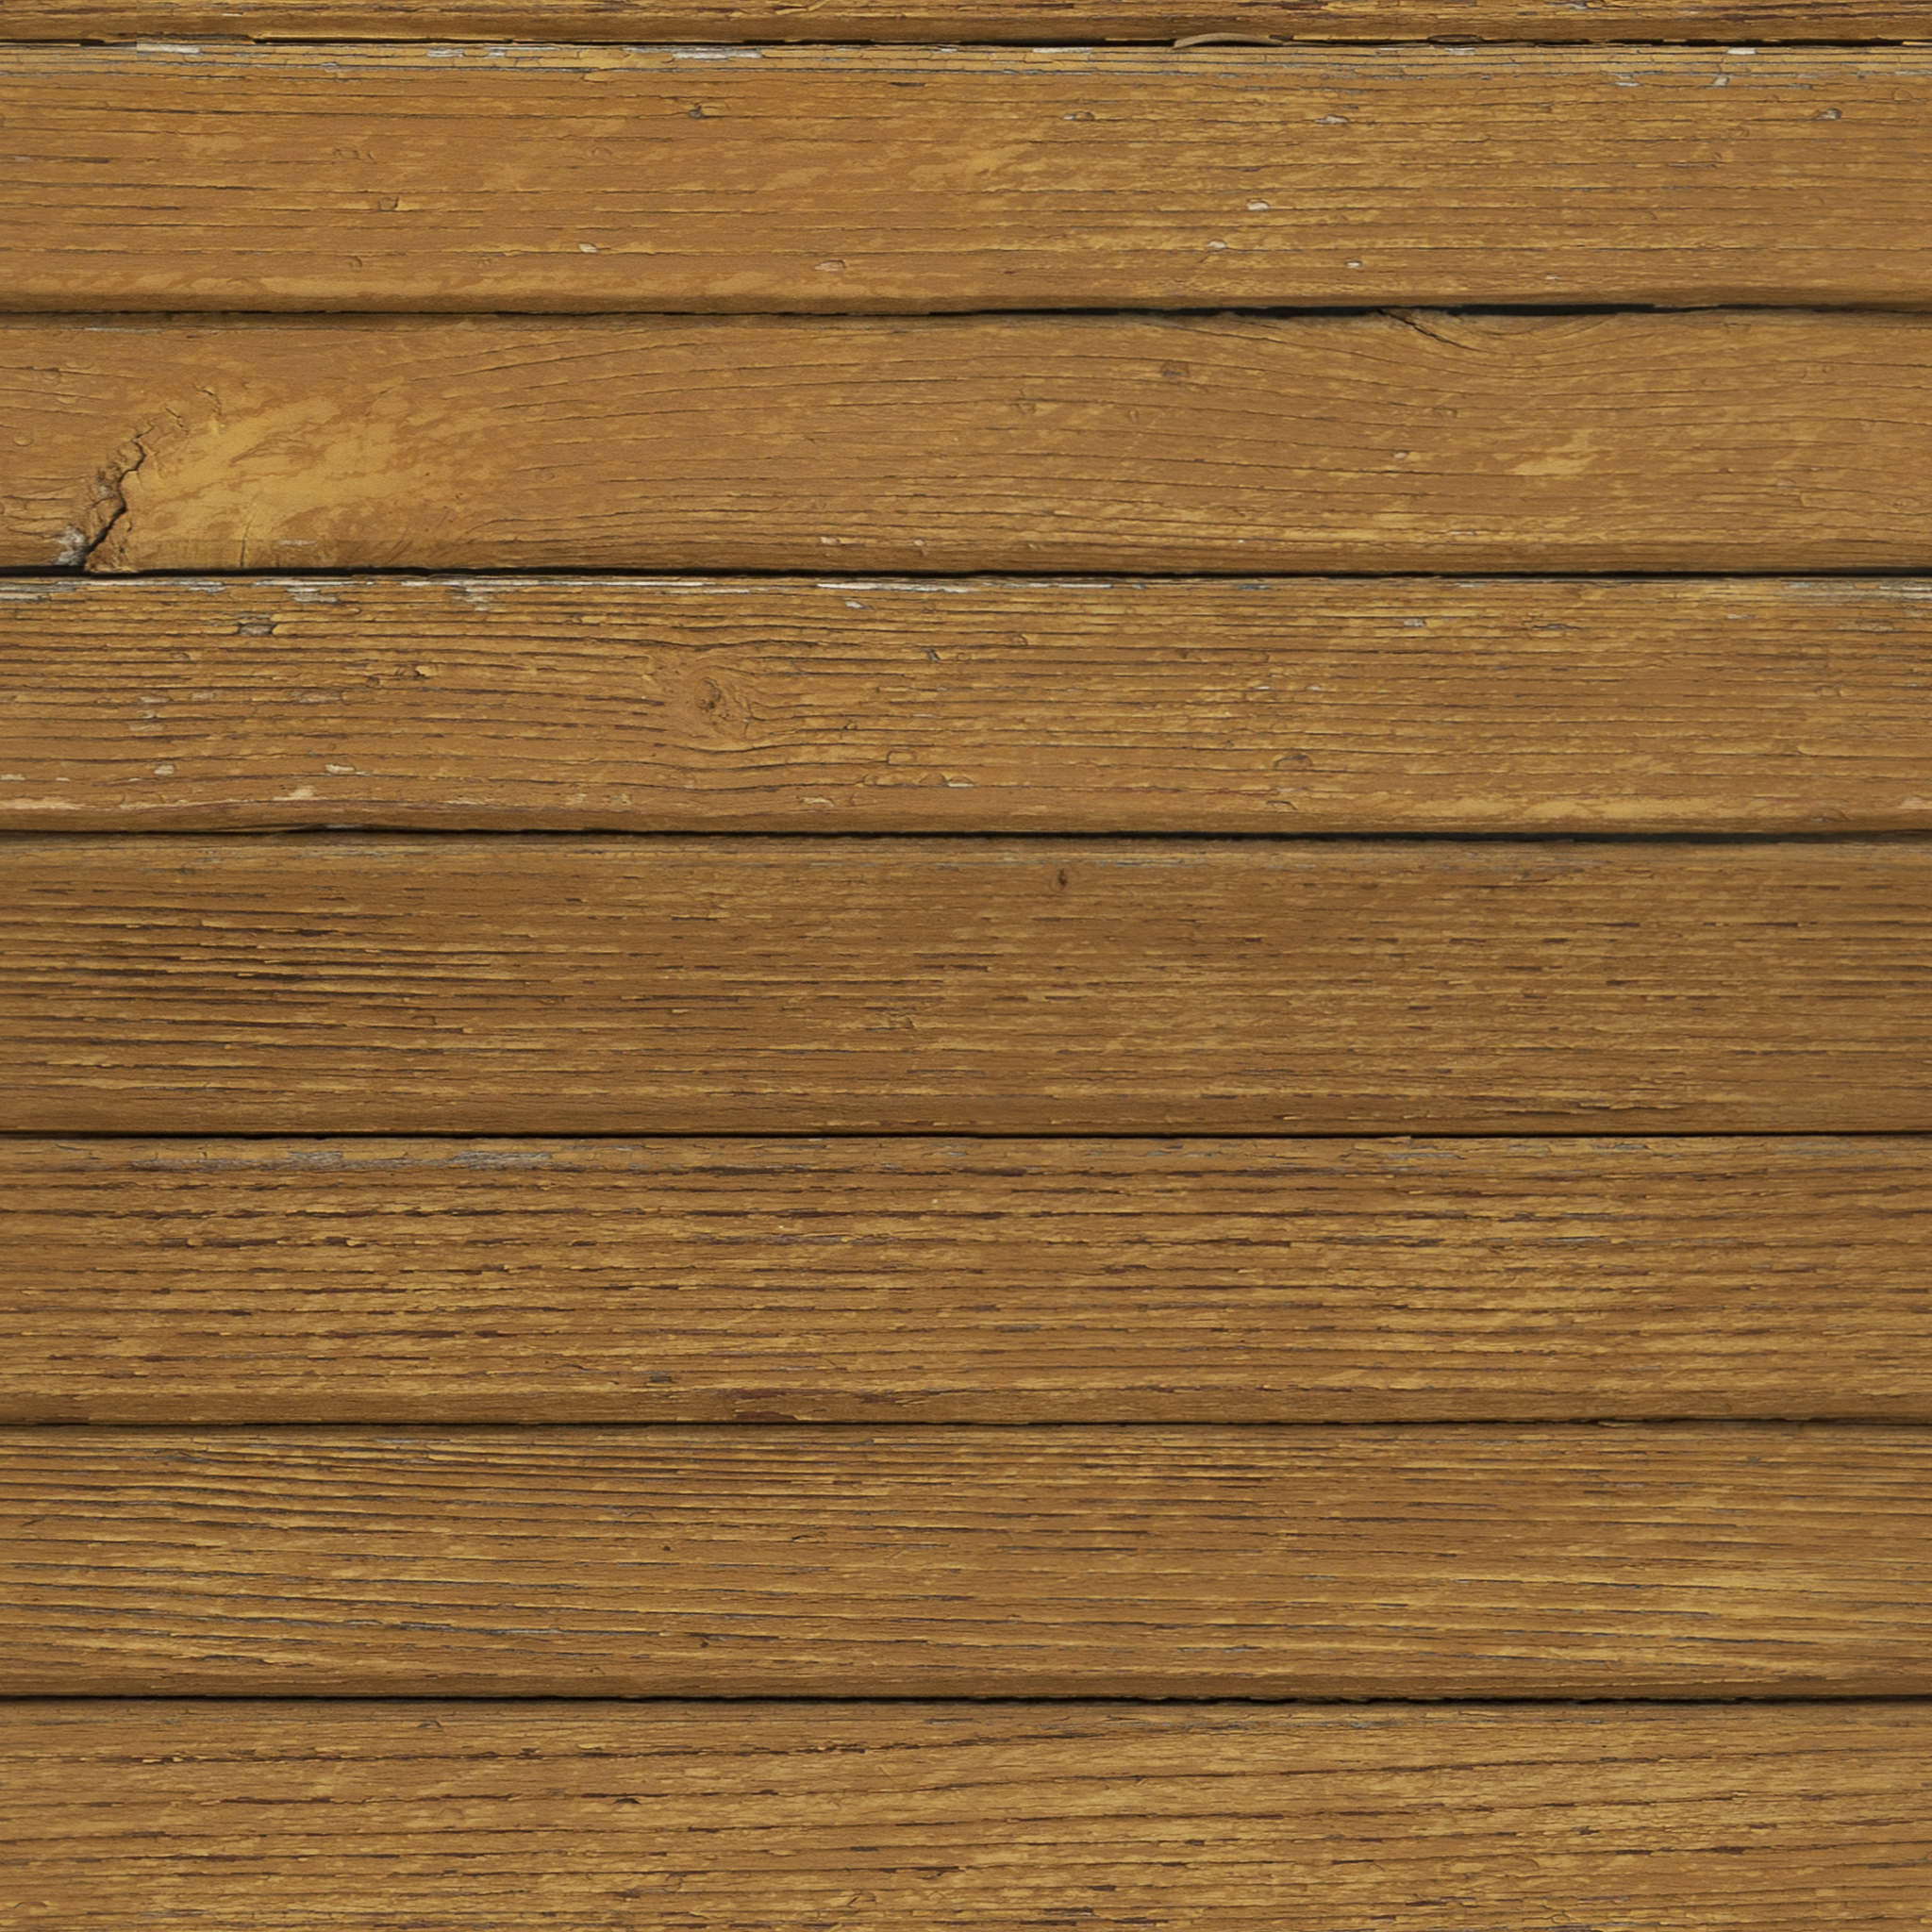 Chestnut Wood Siding.jpg